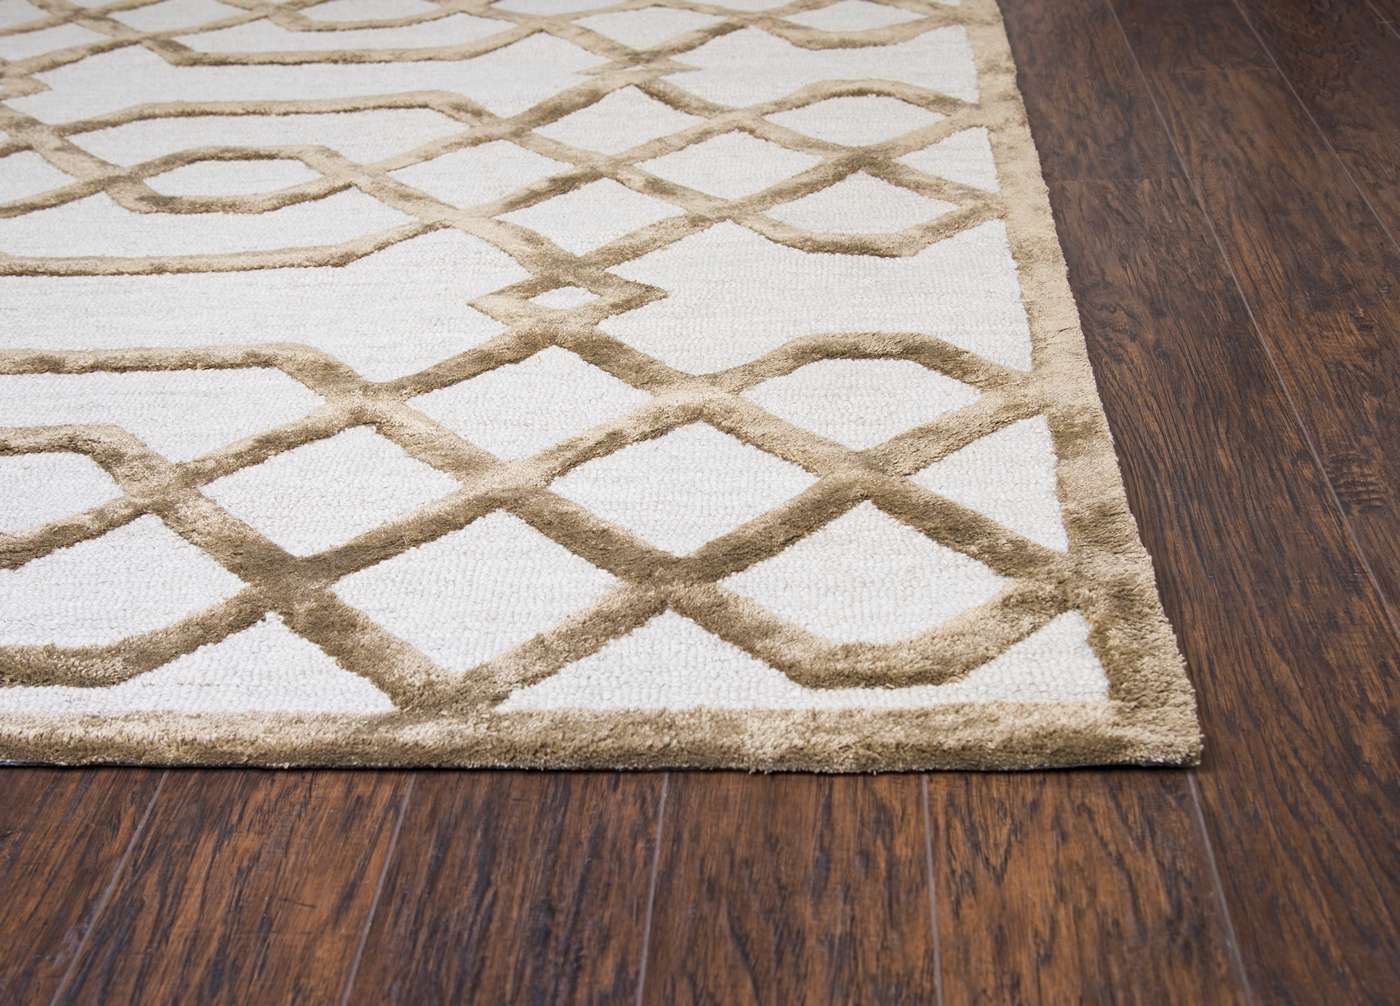 Monroe Trellis Pattern Wool Area Rug In Cream Tan 5 X 8